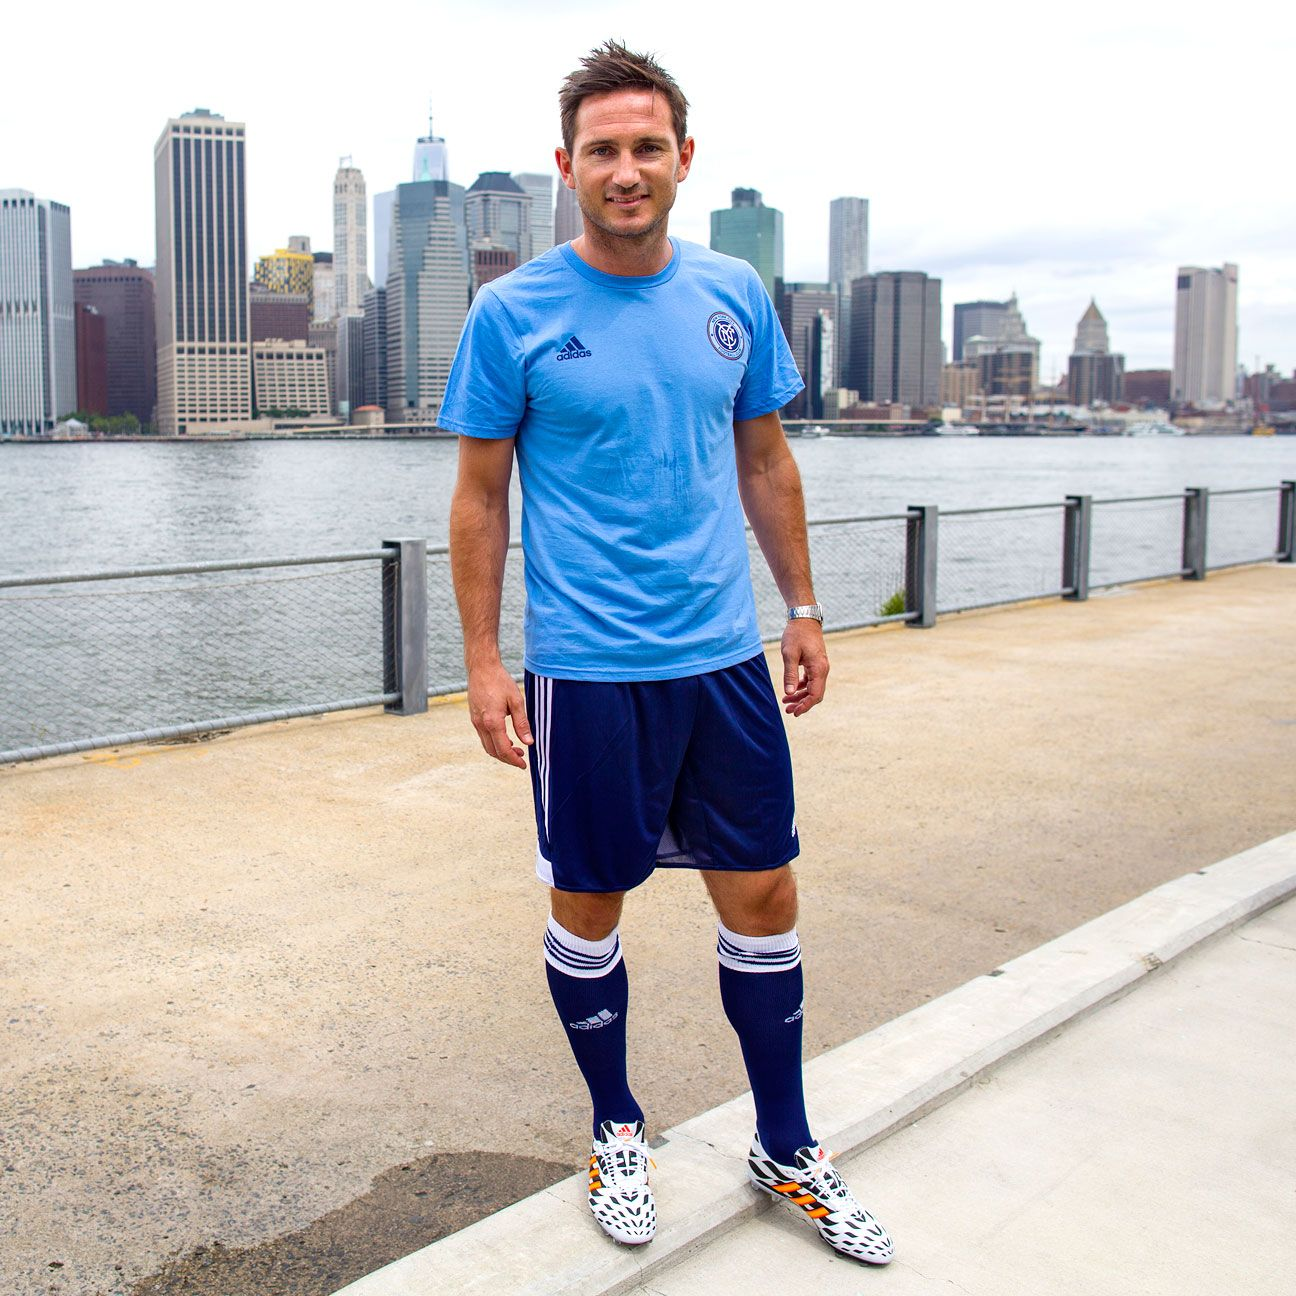 Prior to helping New York City FC kick off their inaugural campaign in 2015, Frank Lampard is expected to first suit up for Manchester City.